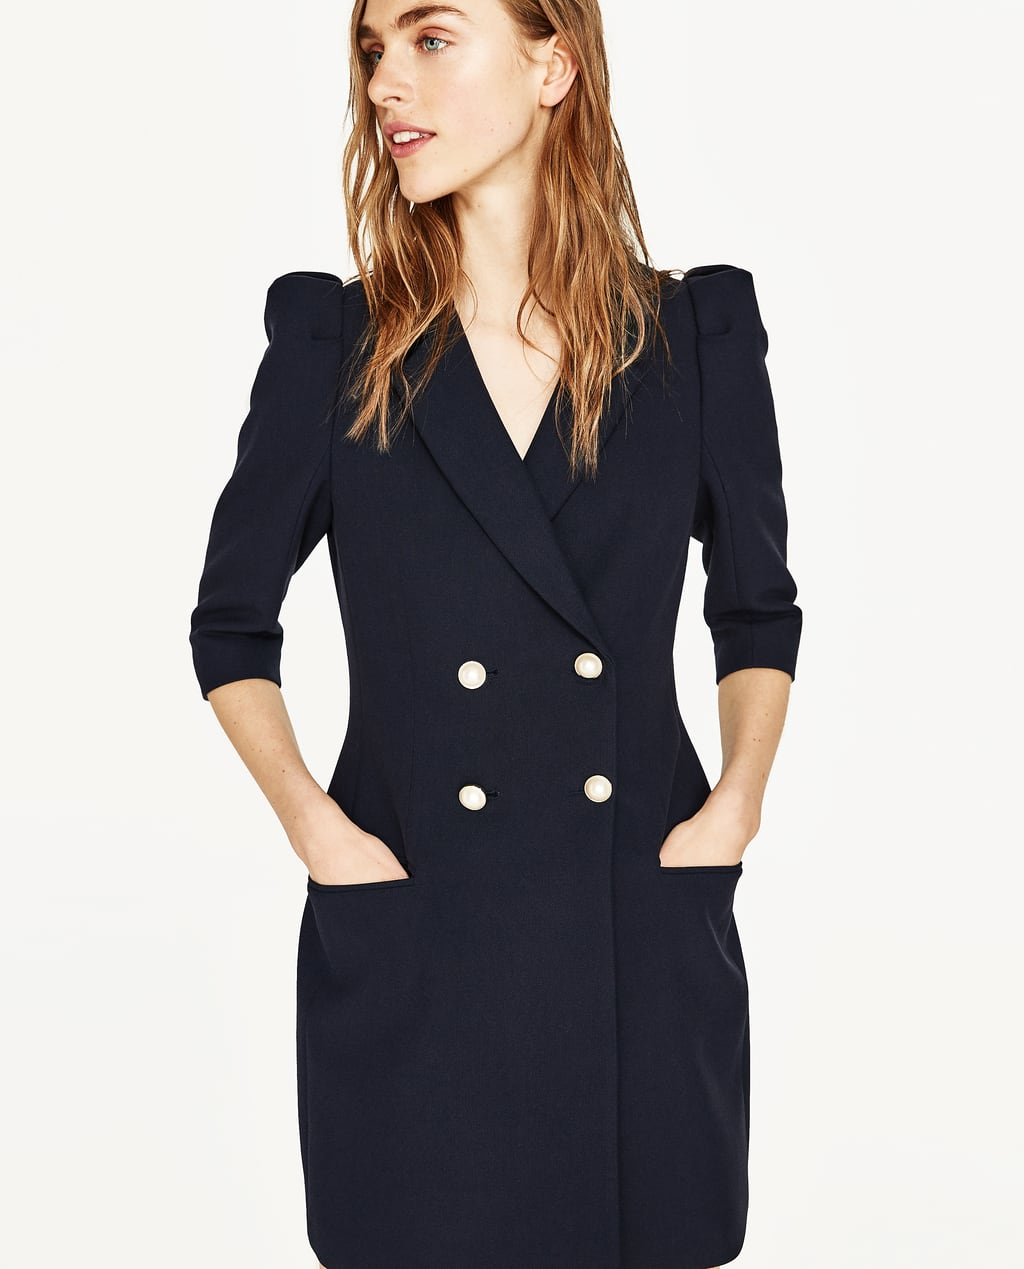 Image 1 of BLAZER DRESS WITH PEARL BUTTONS from Zara - BLAZER DRESS WITH PEARL BUTTONS - NEW IN ZARA United States